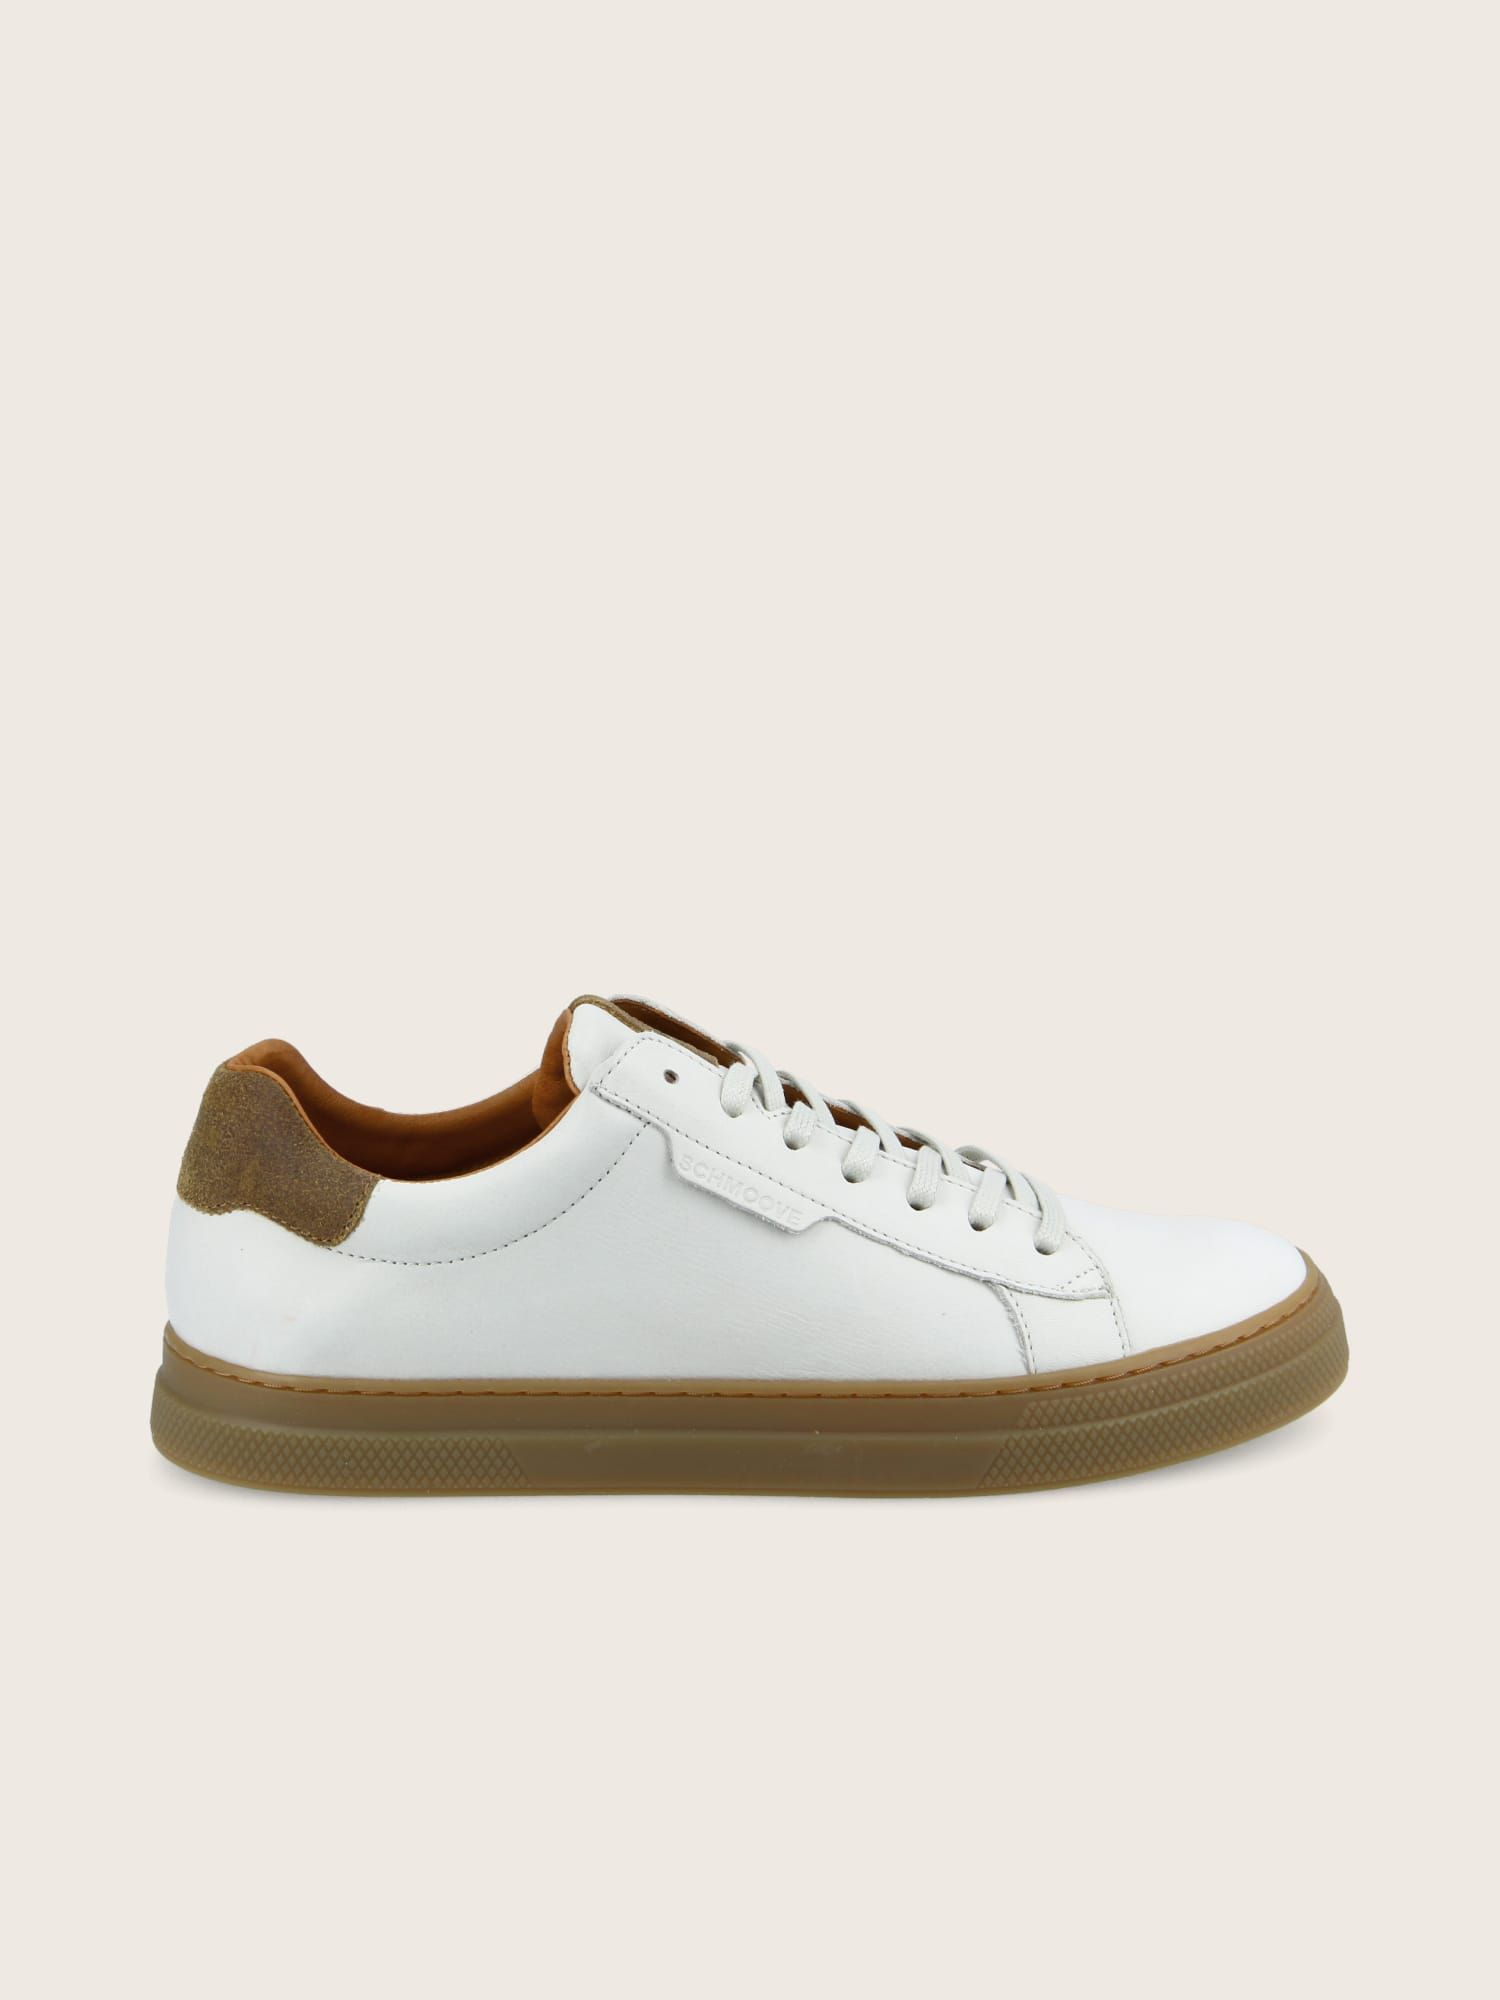 schmoove.fr SPARK CLAY - NAPPA/OIL SUEDE - OFF WHITE/COFFEE